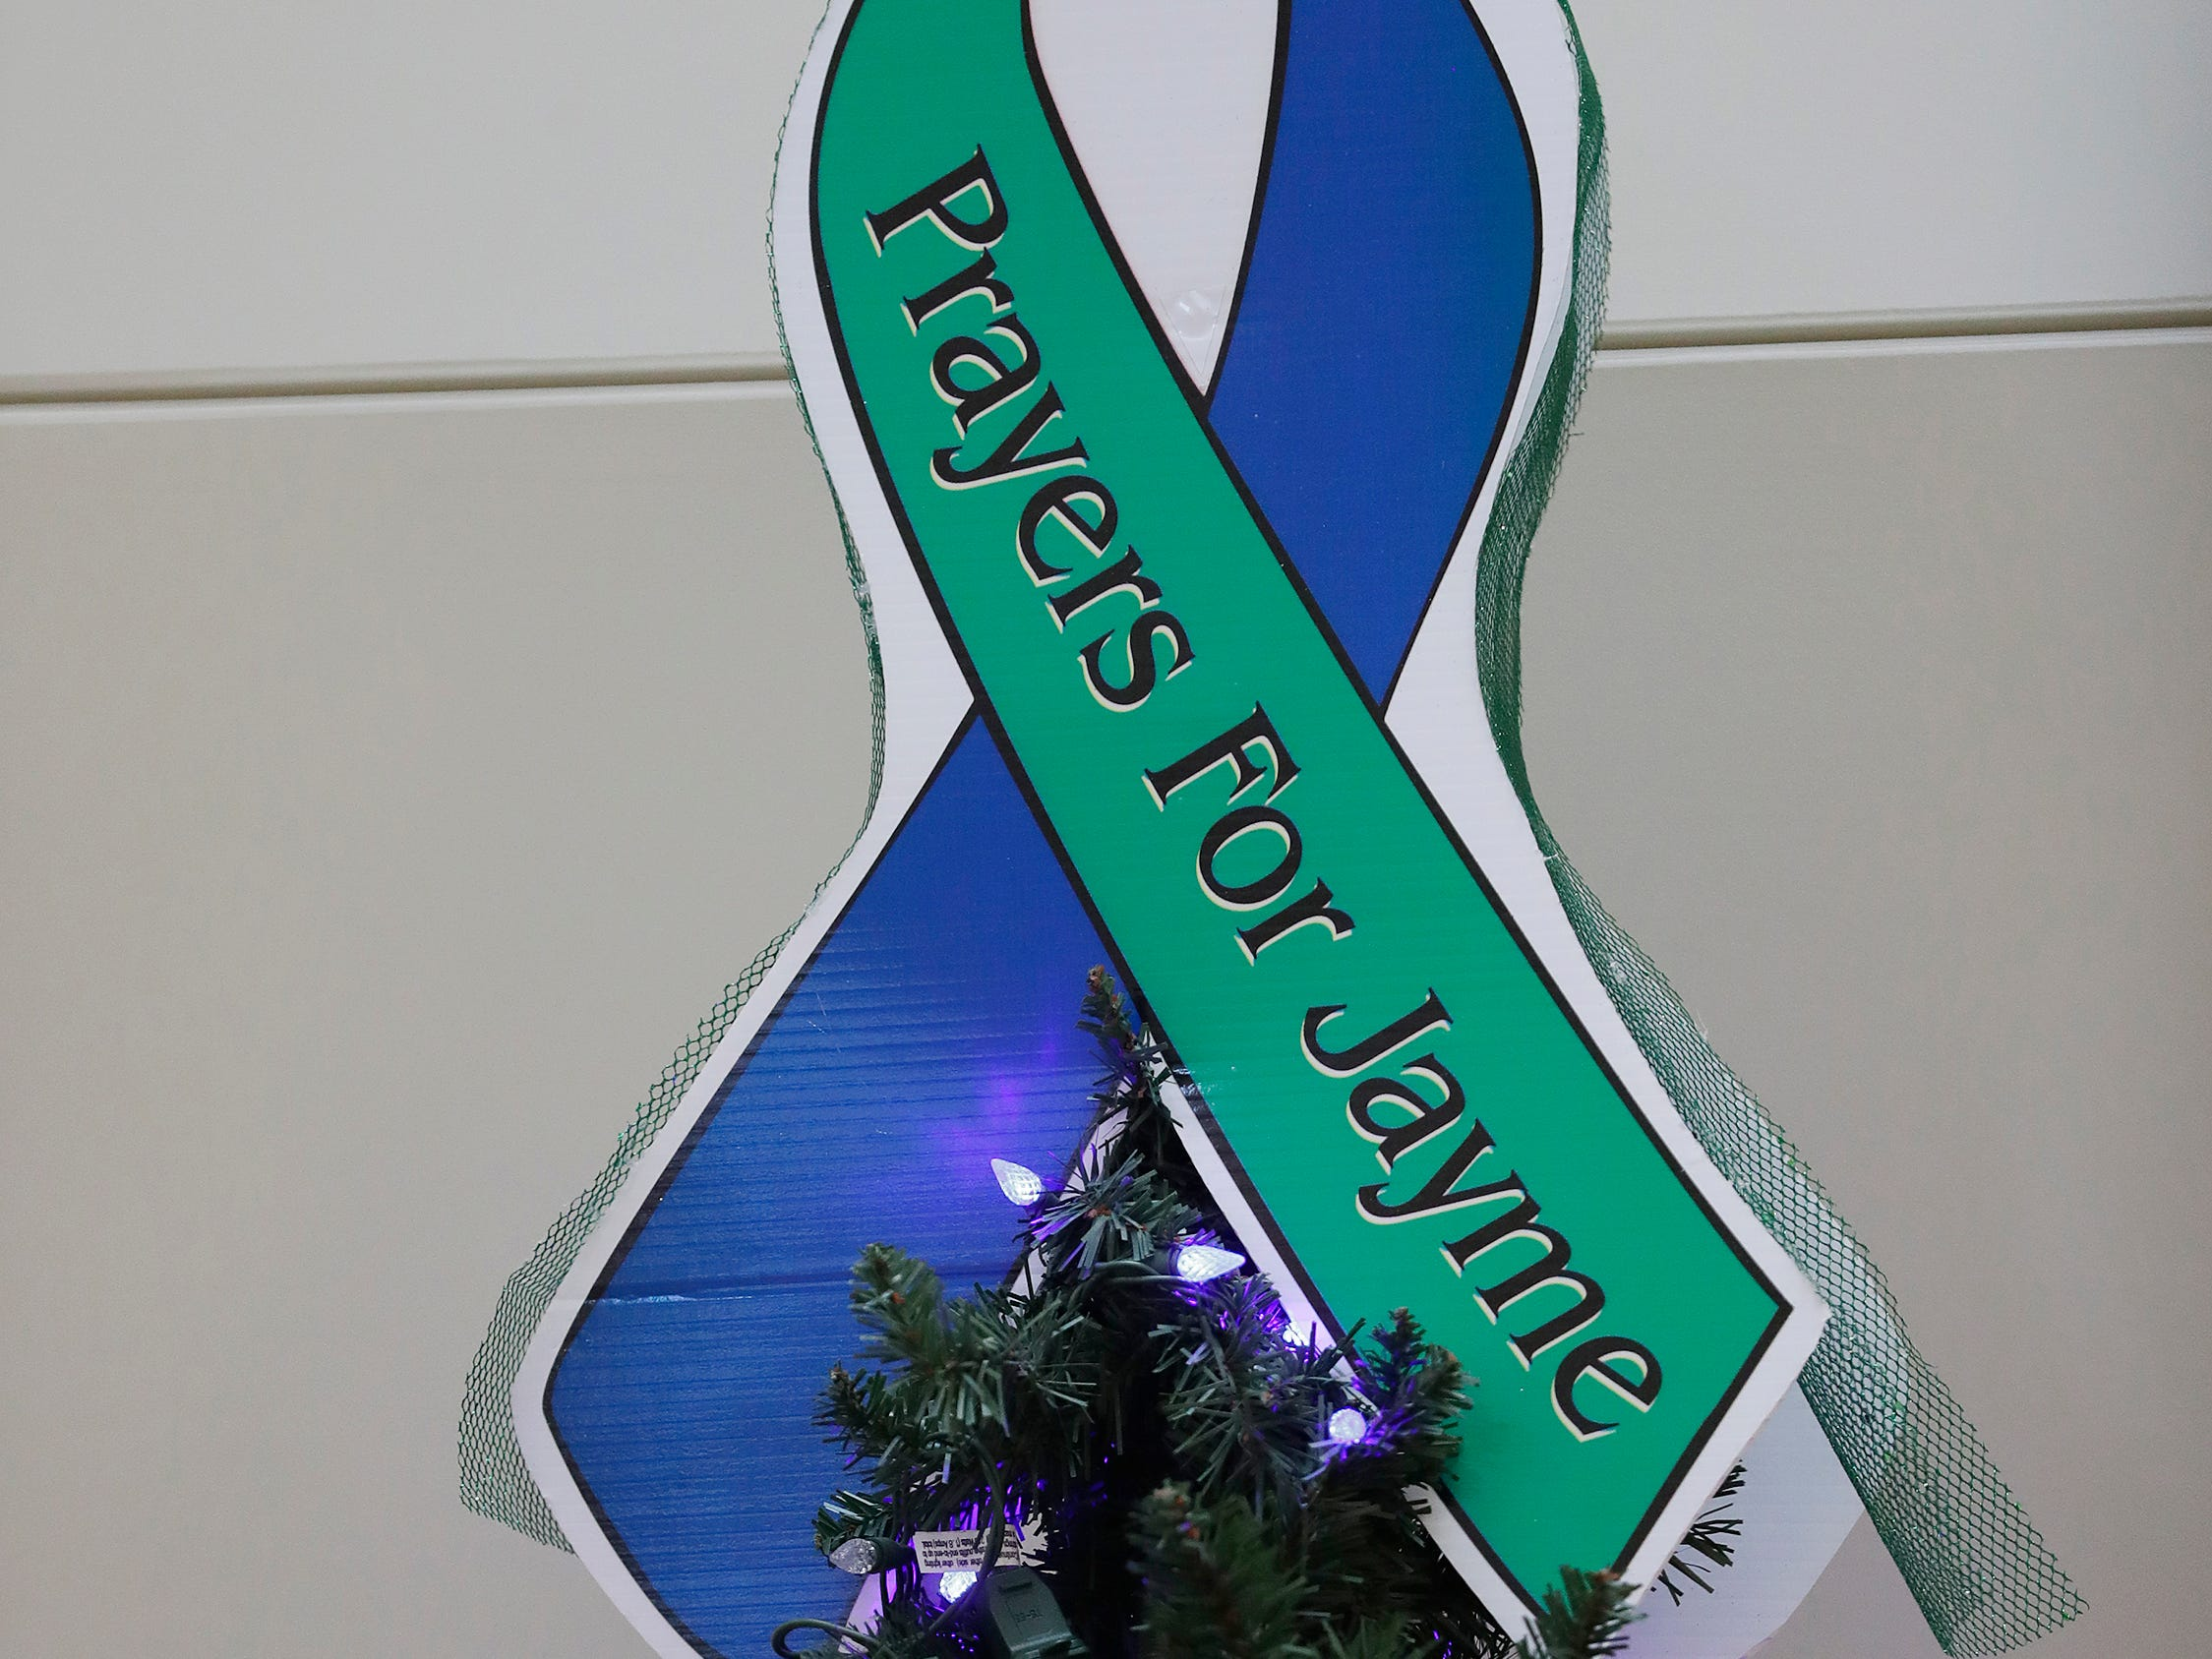 "A ""prayers for Jayme"" ribbon is displayed at the Barron County Sheriff's Department on Friday, January 11, 2019 in Barron, Wis. Douglas County officials found 13-year-old Jayme Closs on Thursday near the northern Wisconsin town of Gordon. Jayme had been missing since Oct. 15, the same day her parents, James, 56, and Denise, 46, were found shot to death in their home outside Barron."